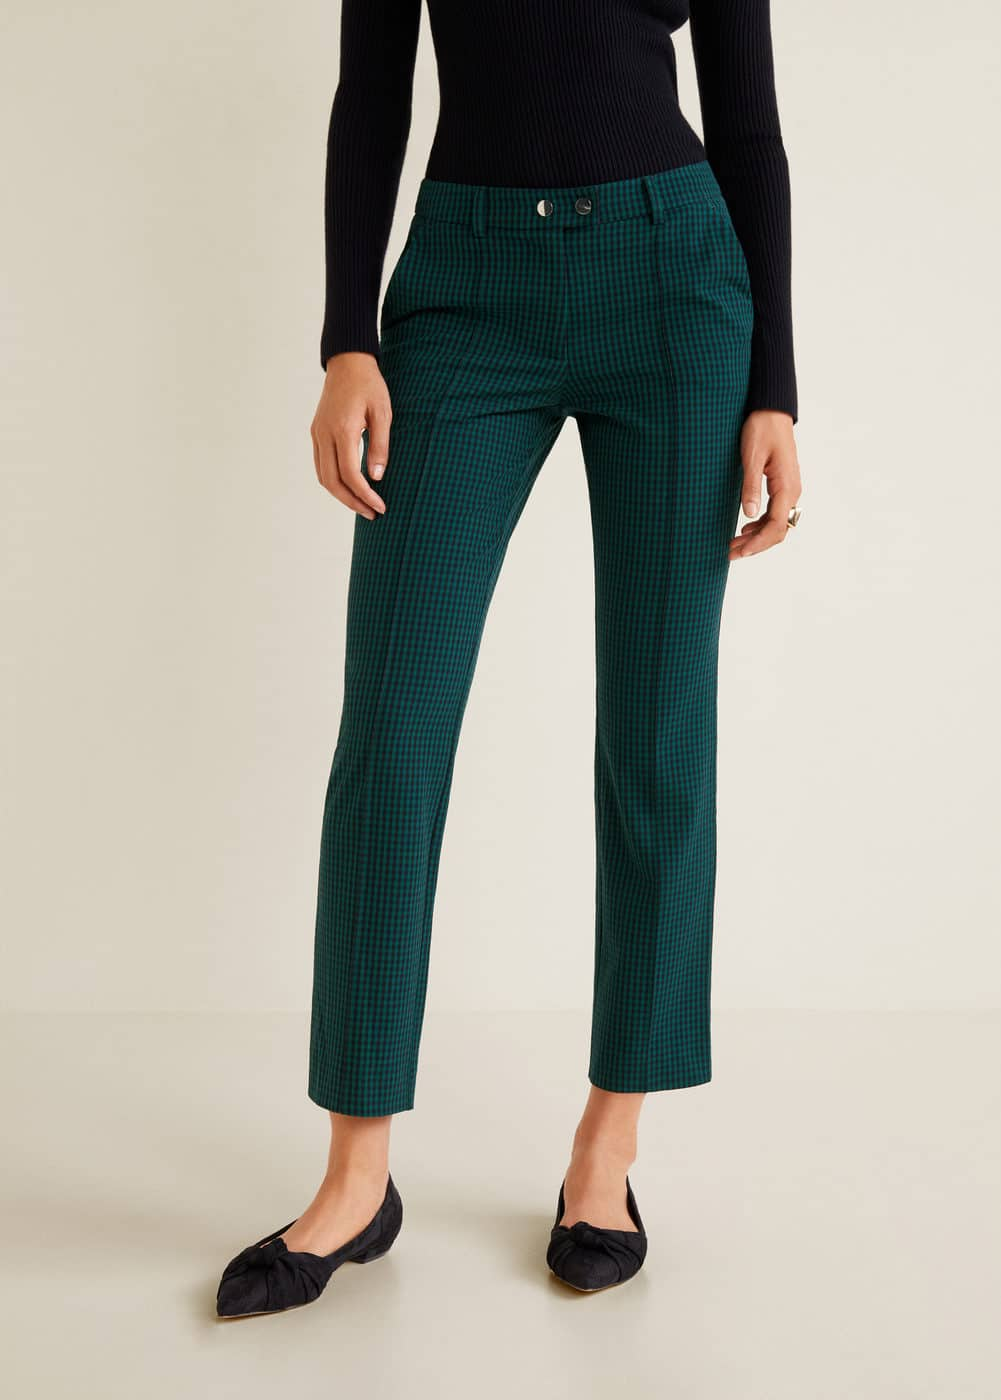 m-harris:pantalon traje crop